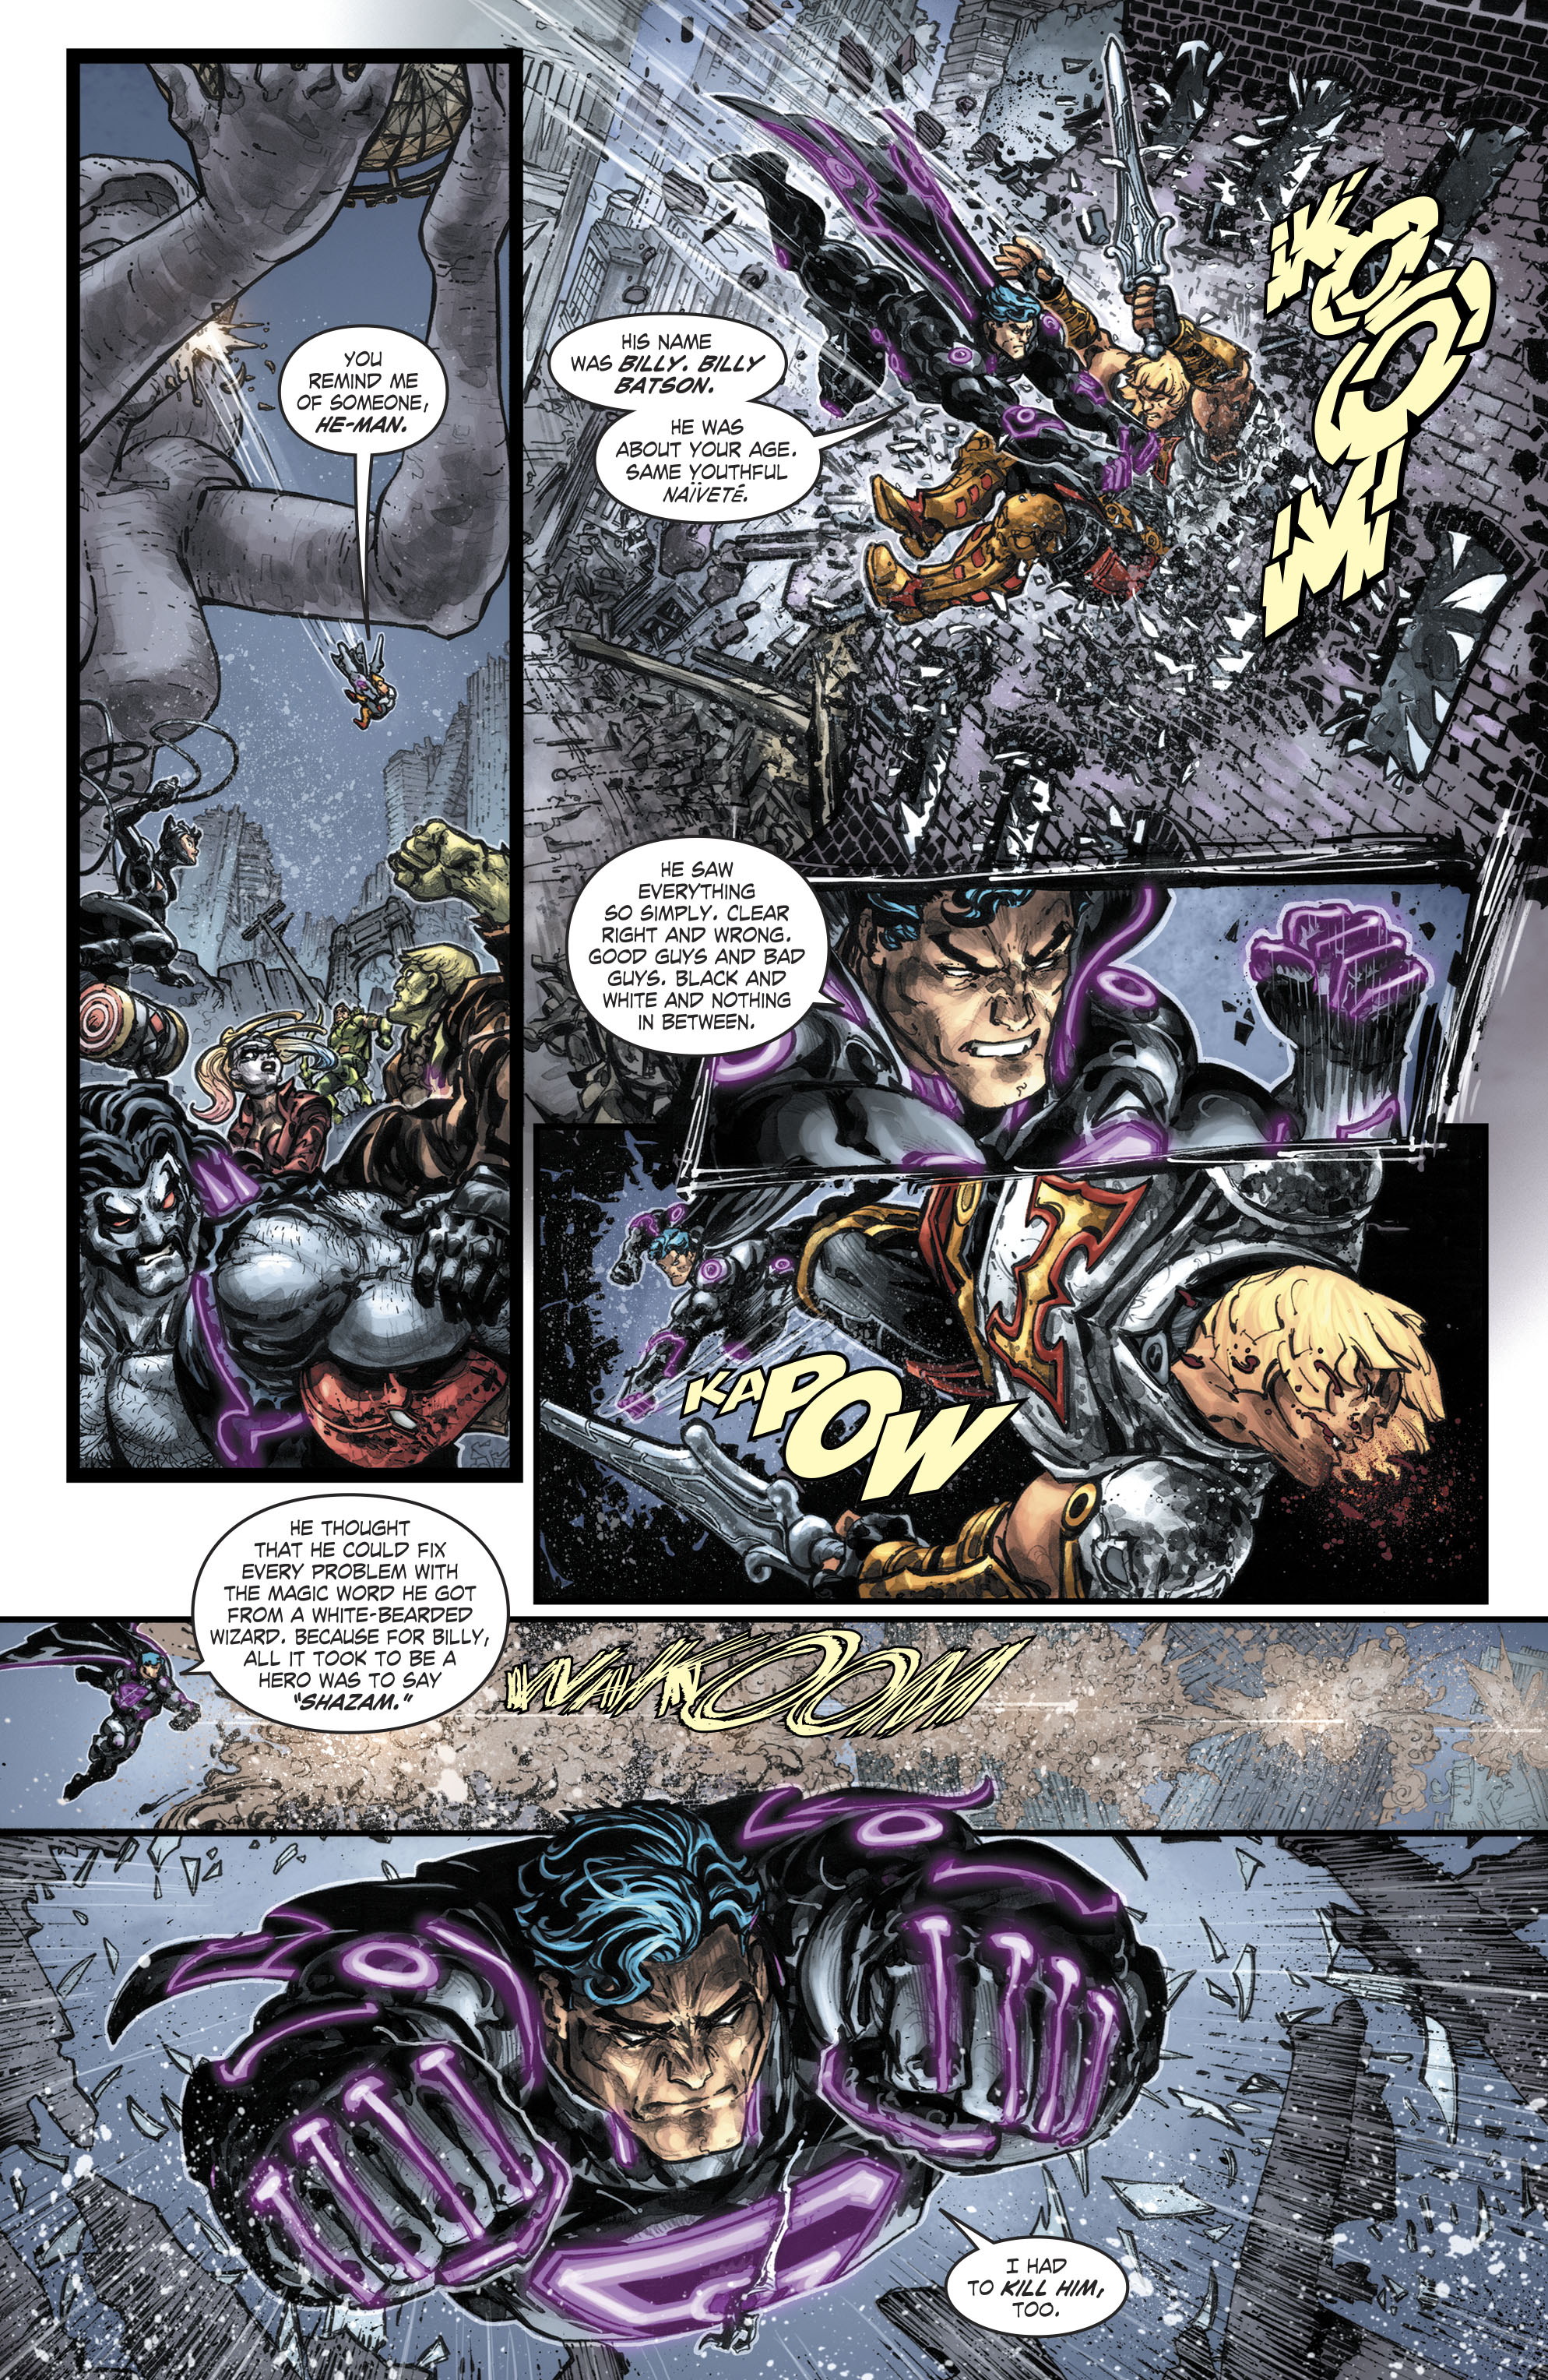 Injustice Vs Masters of the Universe 004 009